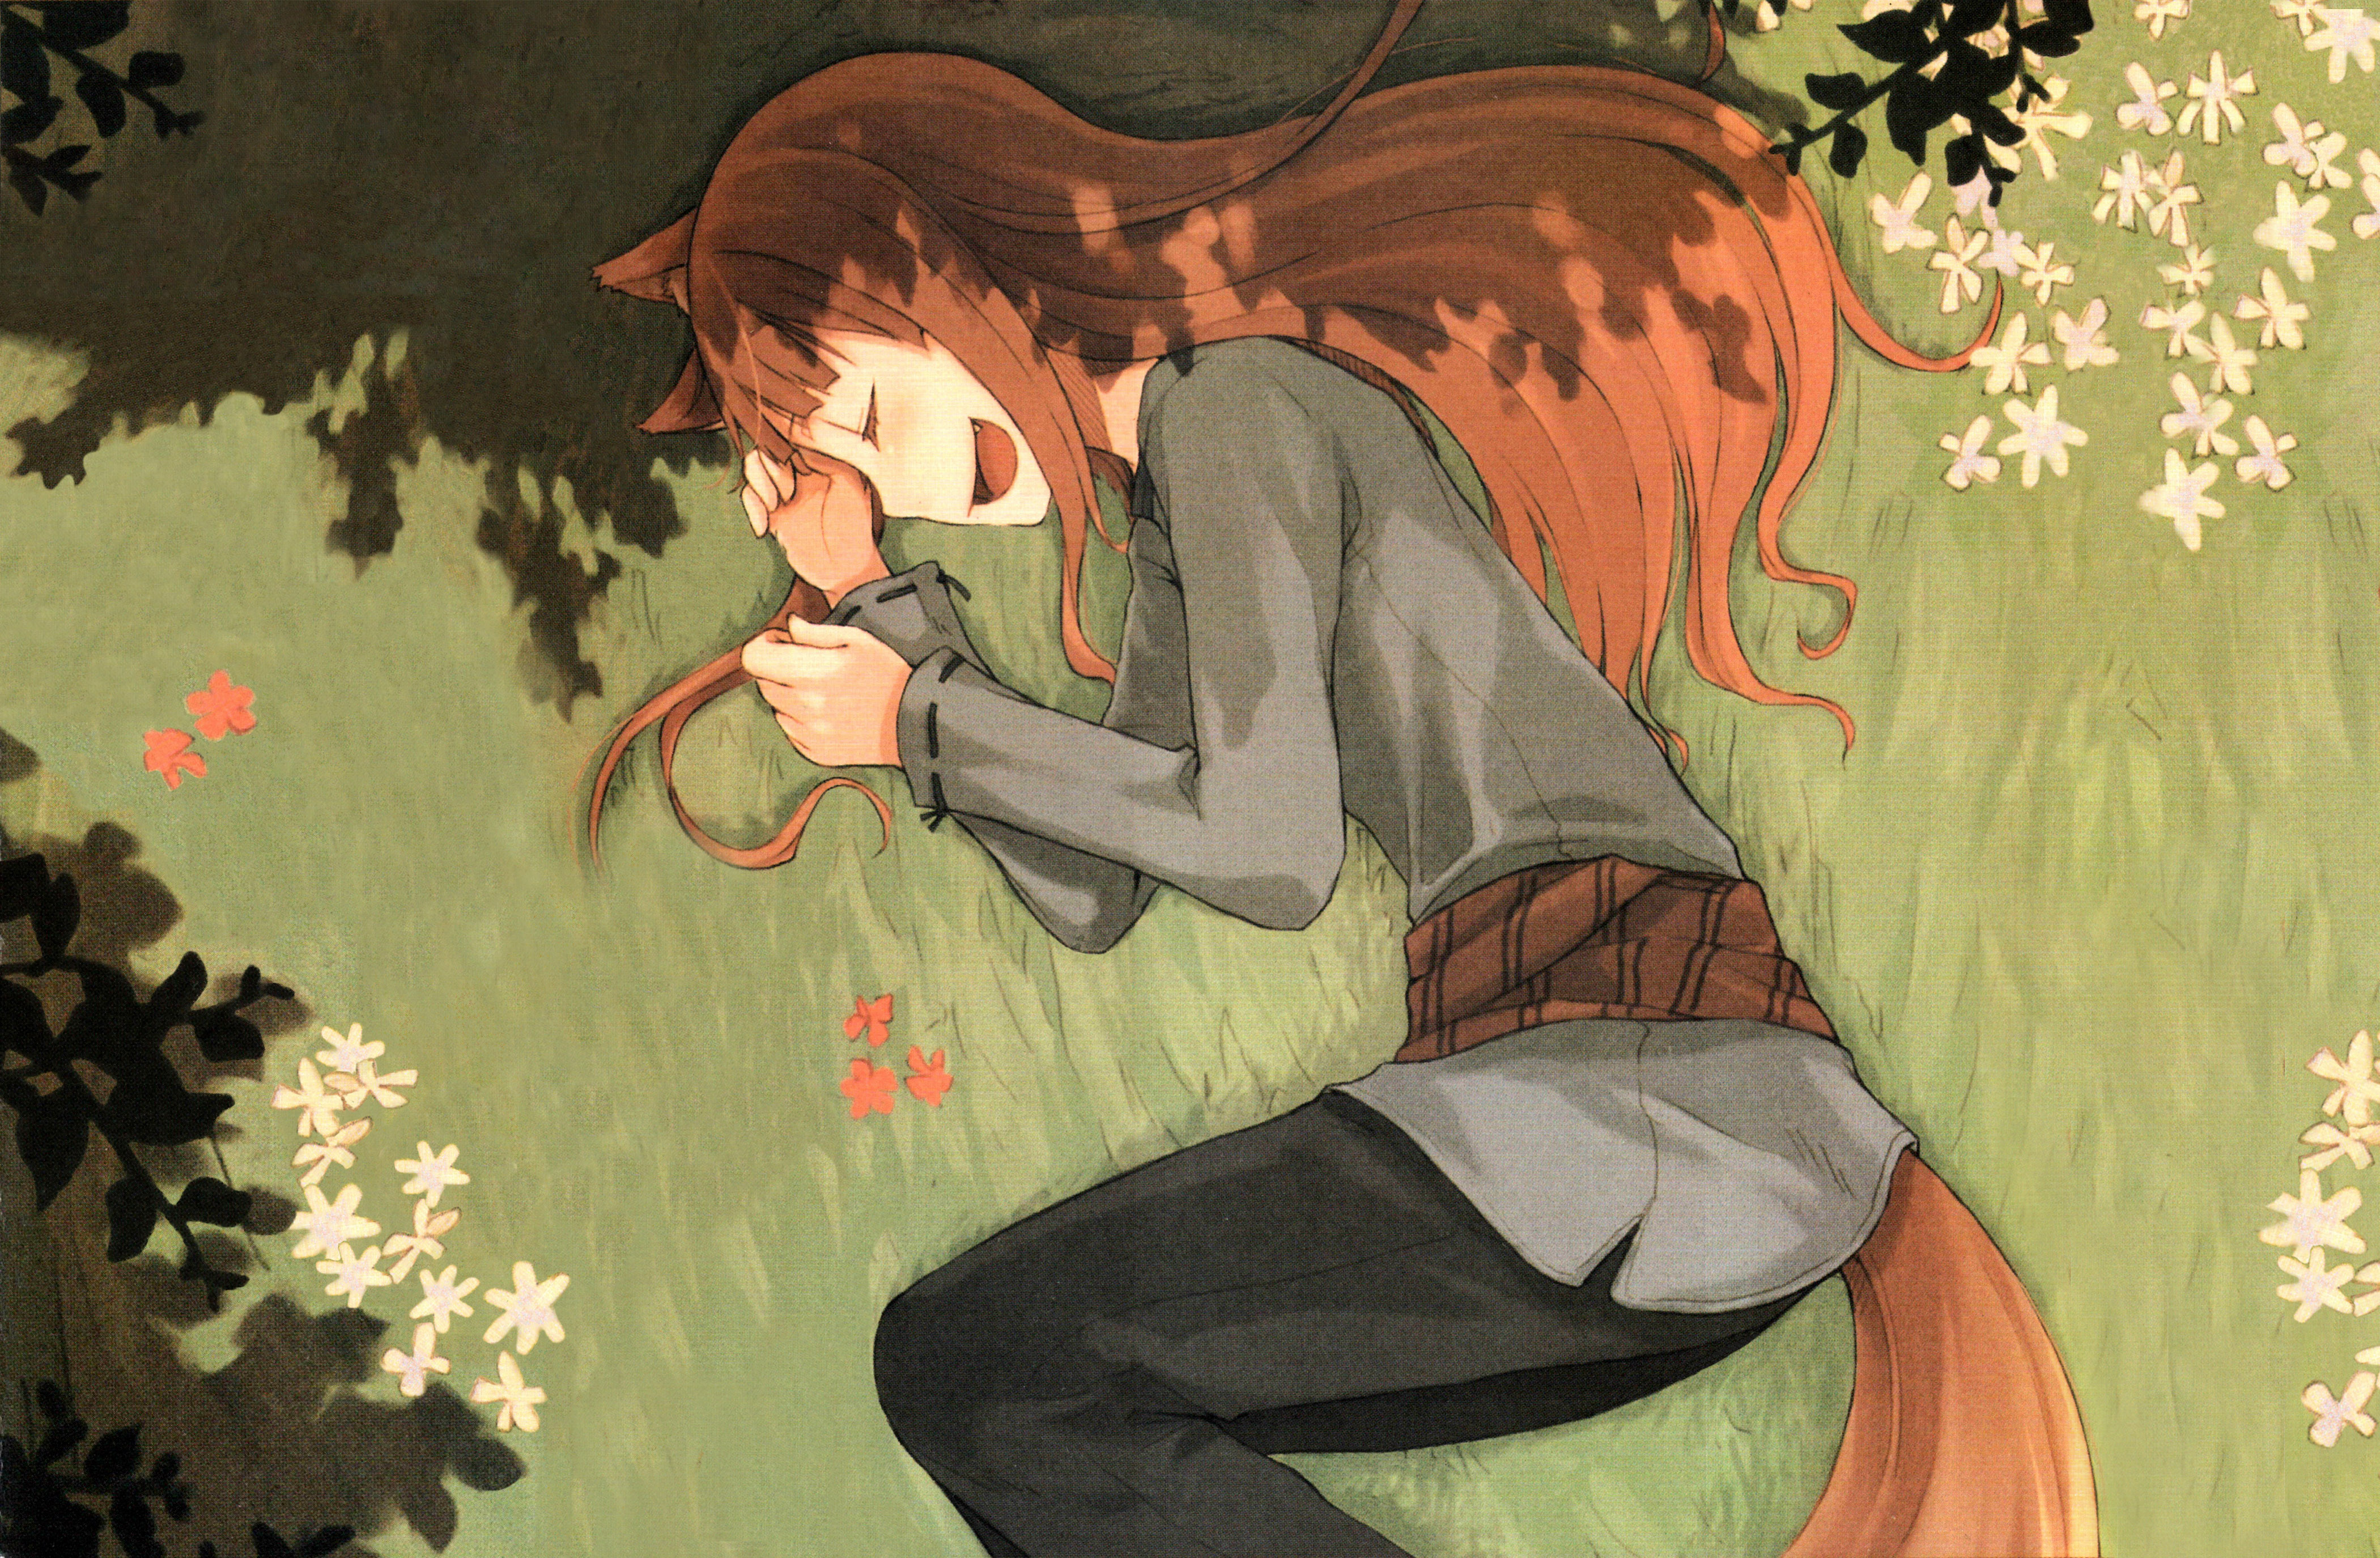 Lv Iphone Wallpaper Spice And Wolf 4k Ultra Hd Wallpaper Background Image